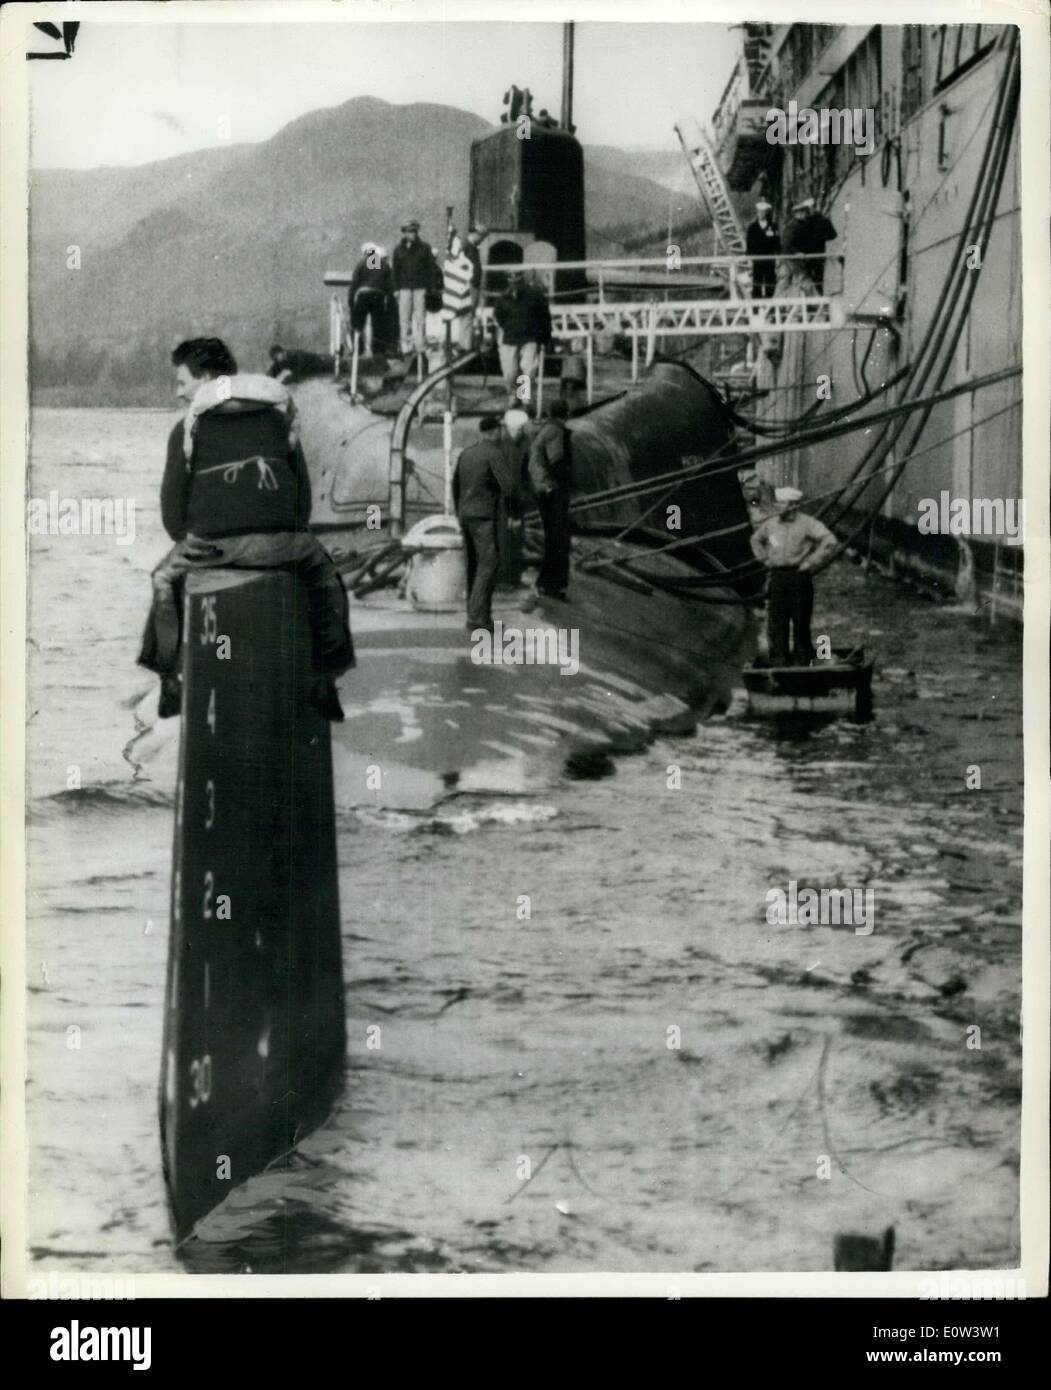 Mar. 28, 1961 - Demonstrator squats on nuclear sub?s tailfin ? An anti-Polaris demonstrator sat above the waves on the tailfin of America?s nuclear submarine ?Patrick Henry? for 45 minutes yesterday in the Holy Loch. He stayed there until he was taken off by police. He was one of the three commandos who boarded the vessel in defiance of warnings to keep clear. One of the men was pulled from a canoe up the side of the submarine by a sailor and then slumped into ?passive resistance? drill. The second went alongside the sub and was pulled aboard, the third sat on the tailfin - Stock Image